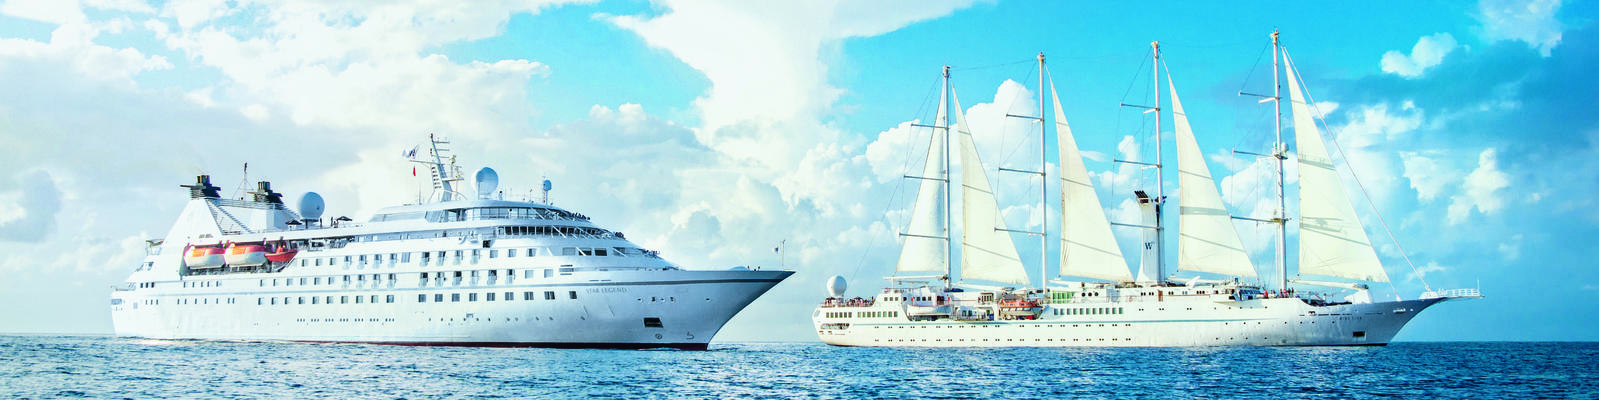 Αποτέλεσμα εικόνας για Windstar Adds More Overnights and Late-Night Port Calls in Some of the World's Greatest Places